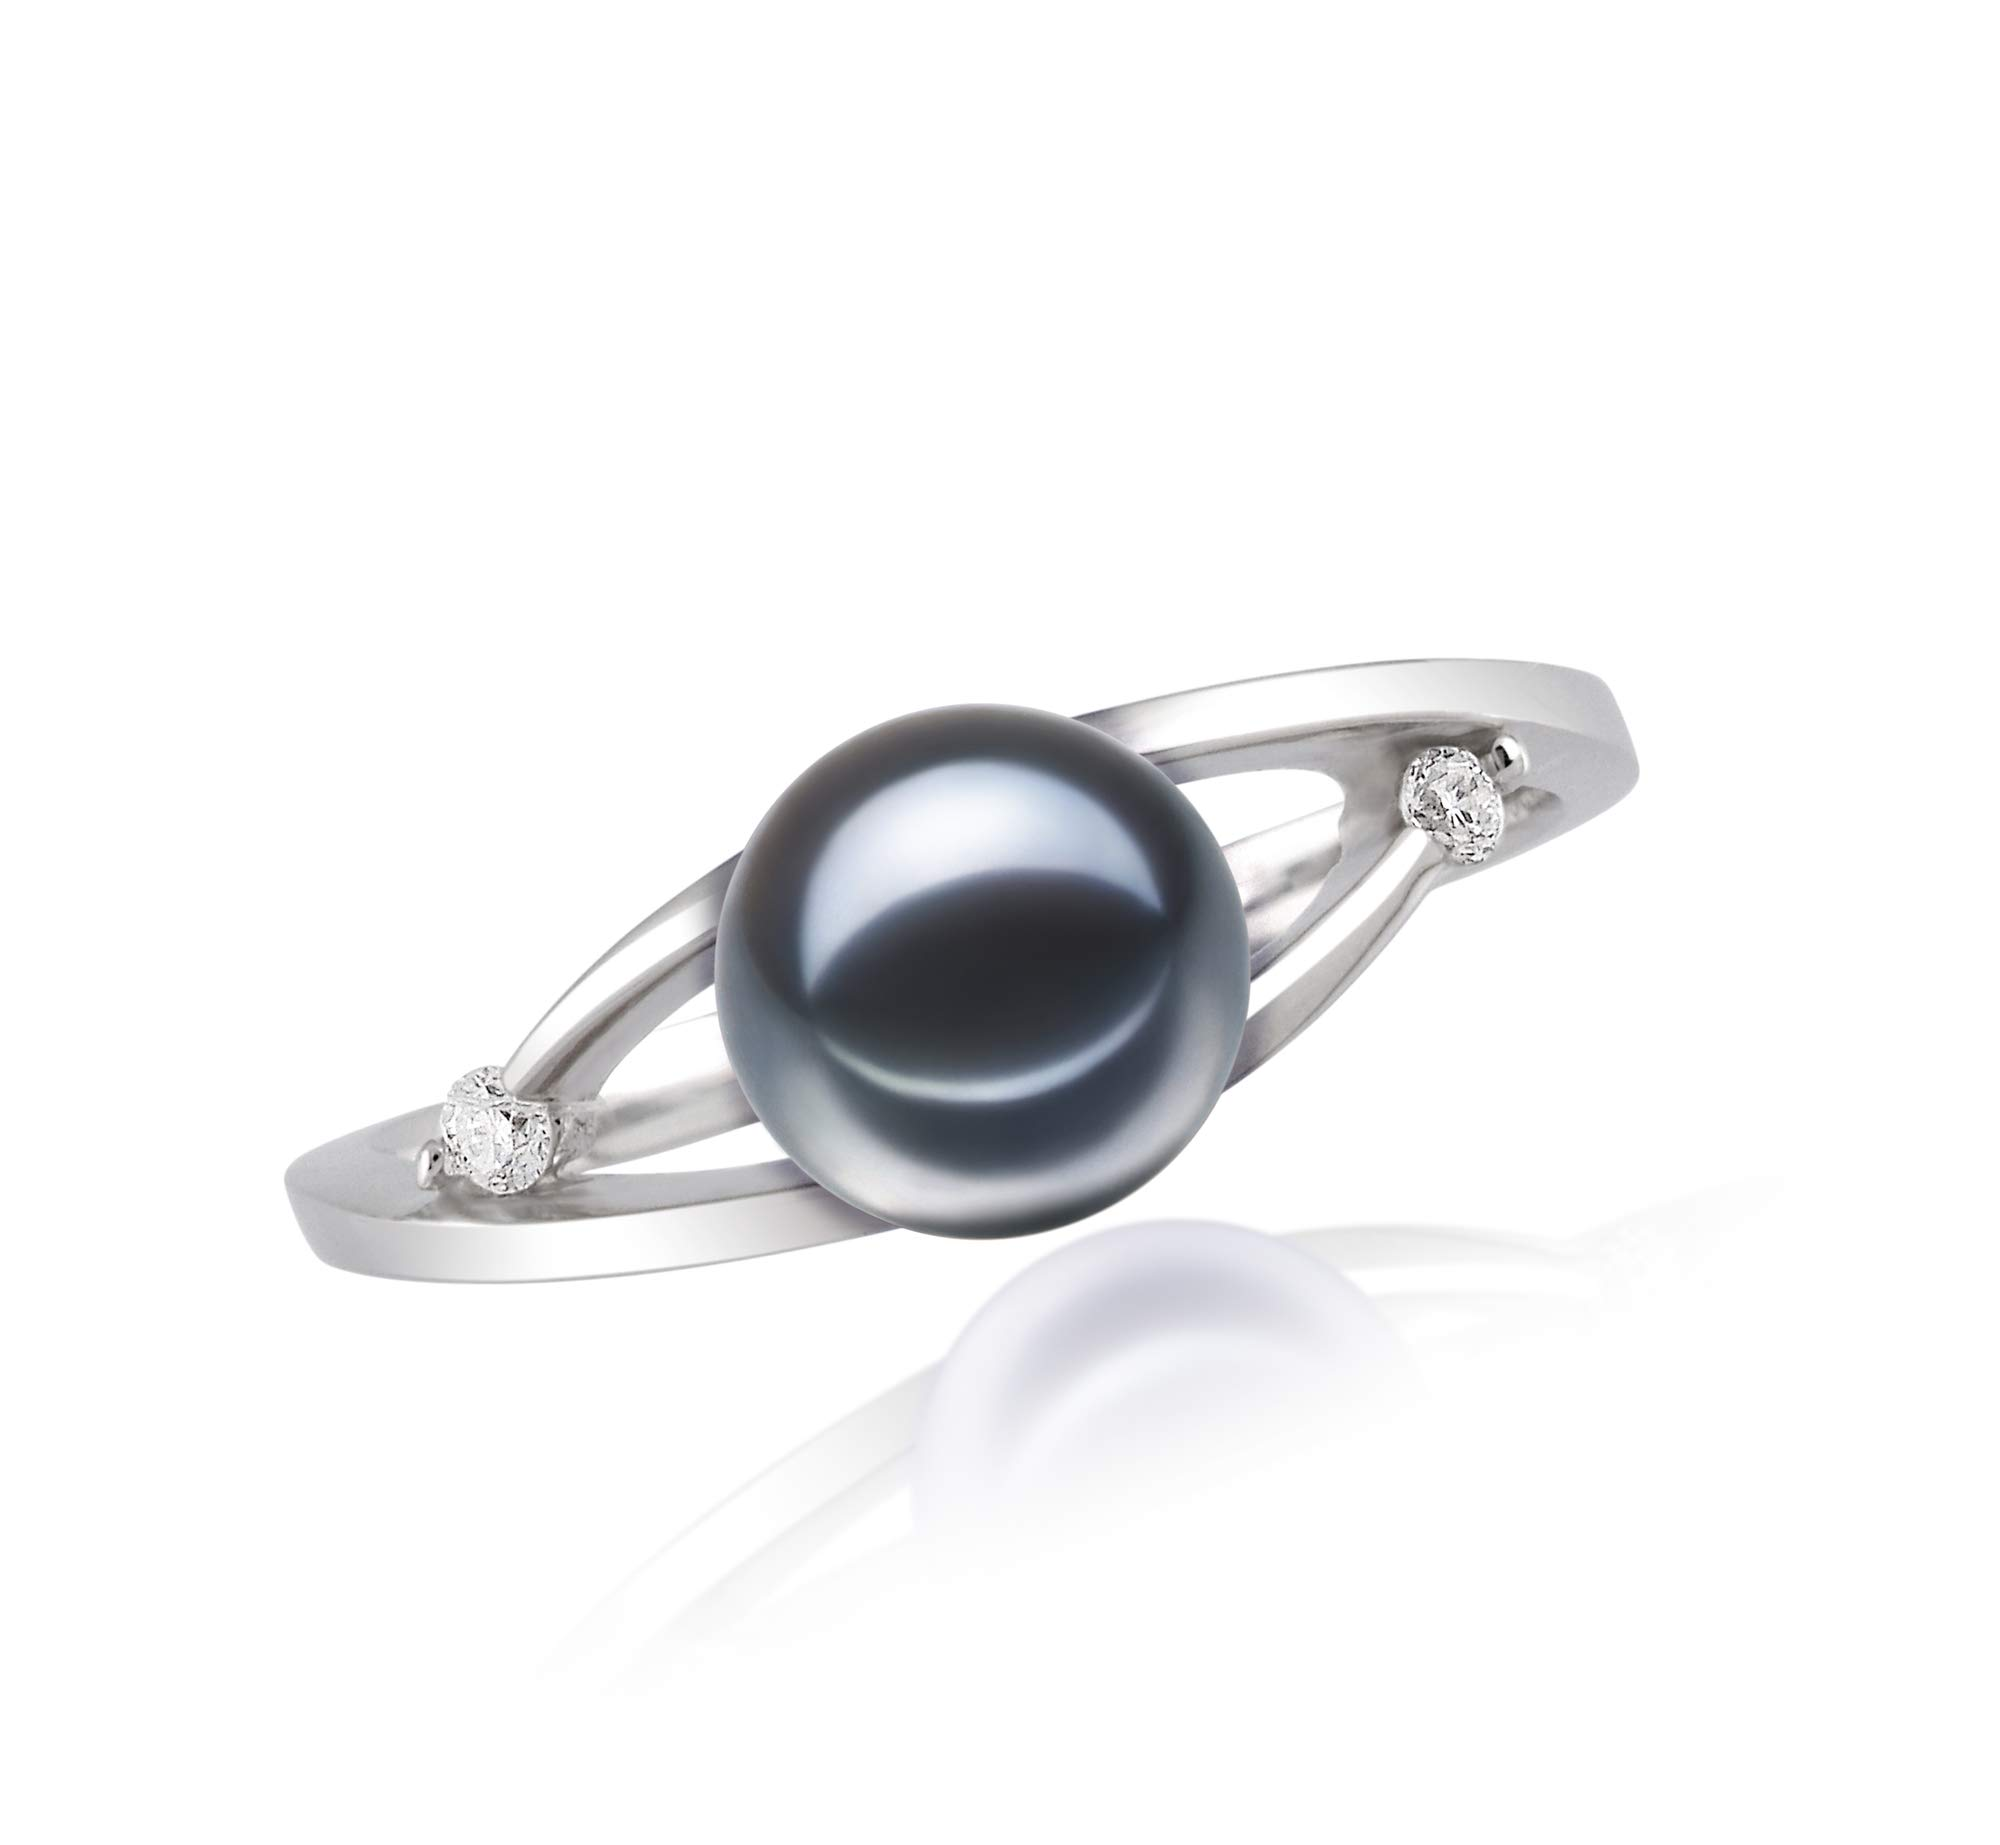 Tanya Black 6-7mm AAAA Quality Freshwater 14K White Gold Cultured Pearl Ring For Women - Size-7 by PearlsOnly (Image #3)